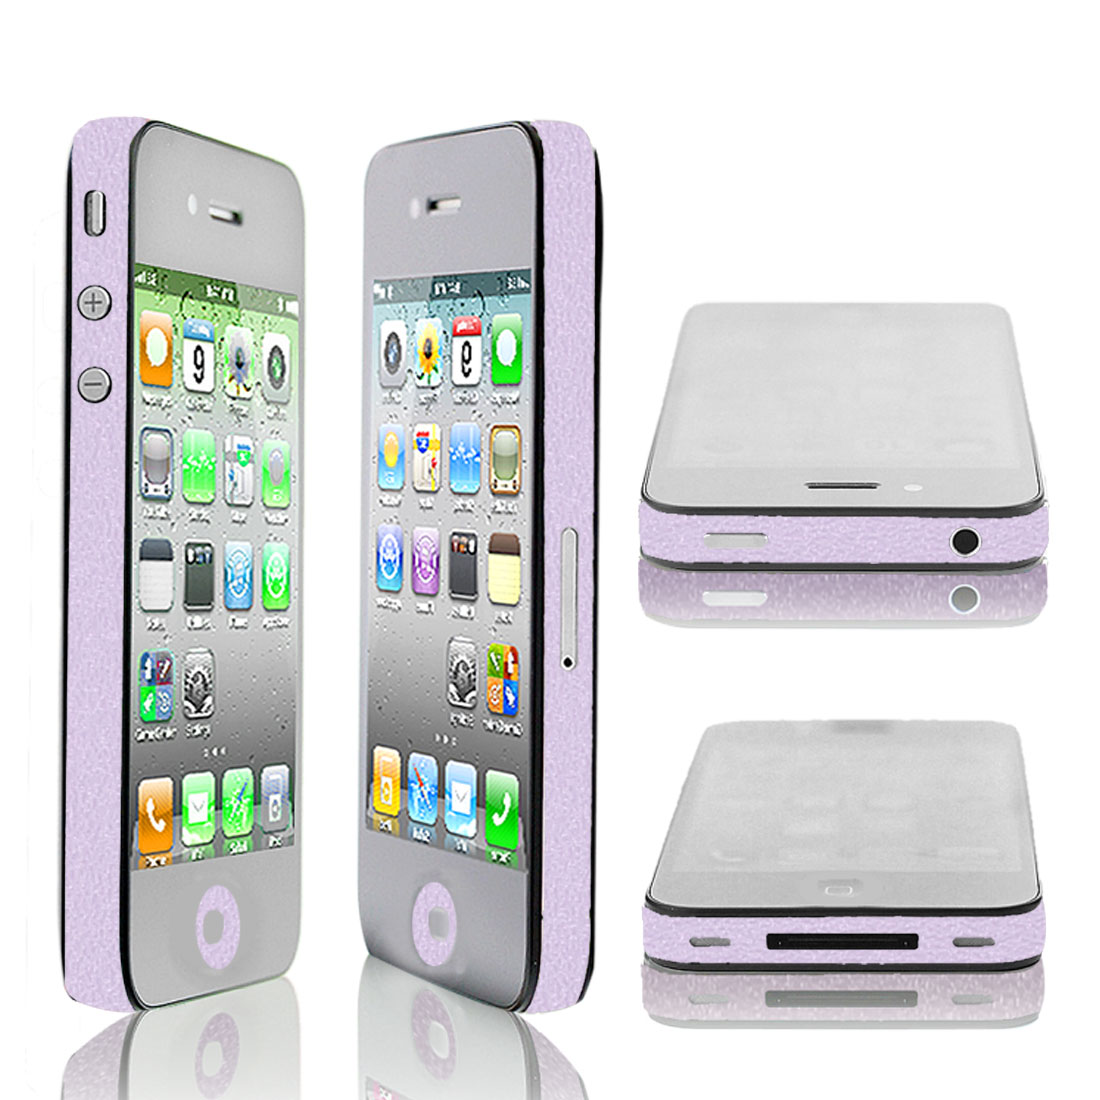 Self Adhesive Light Purple Frame Sticker Edge Wrap Decal Decor for iPhone 4G 4S